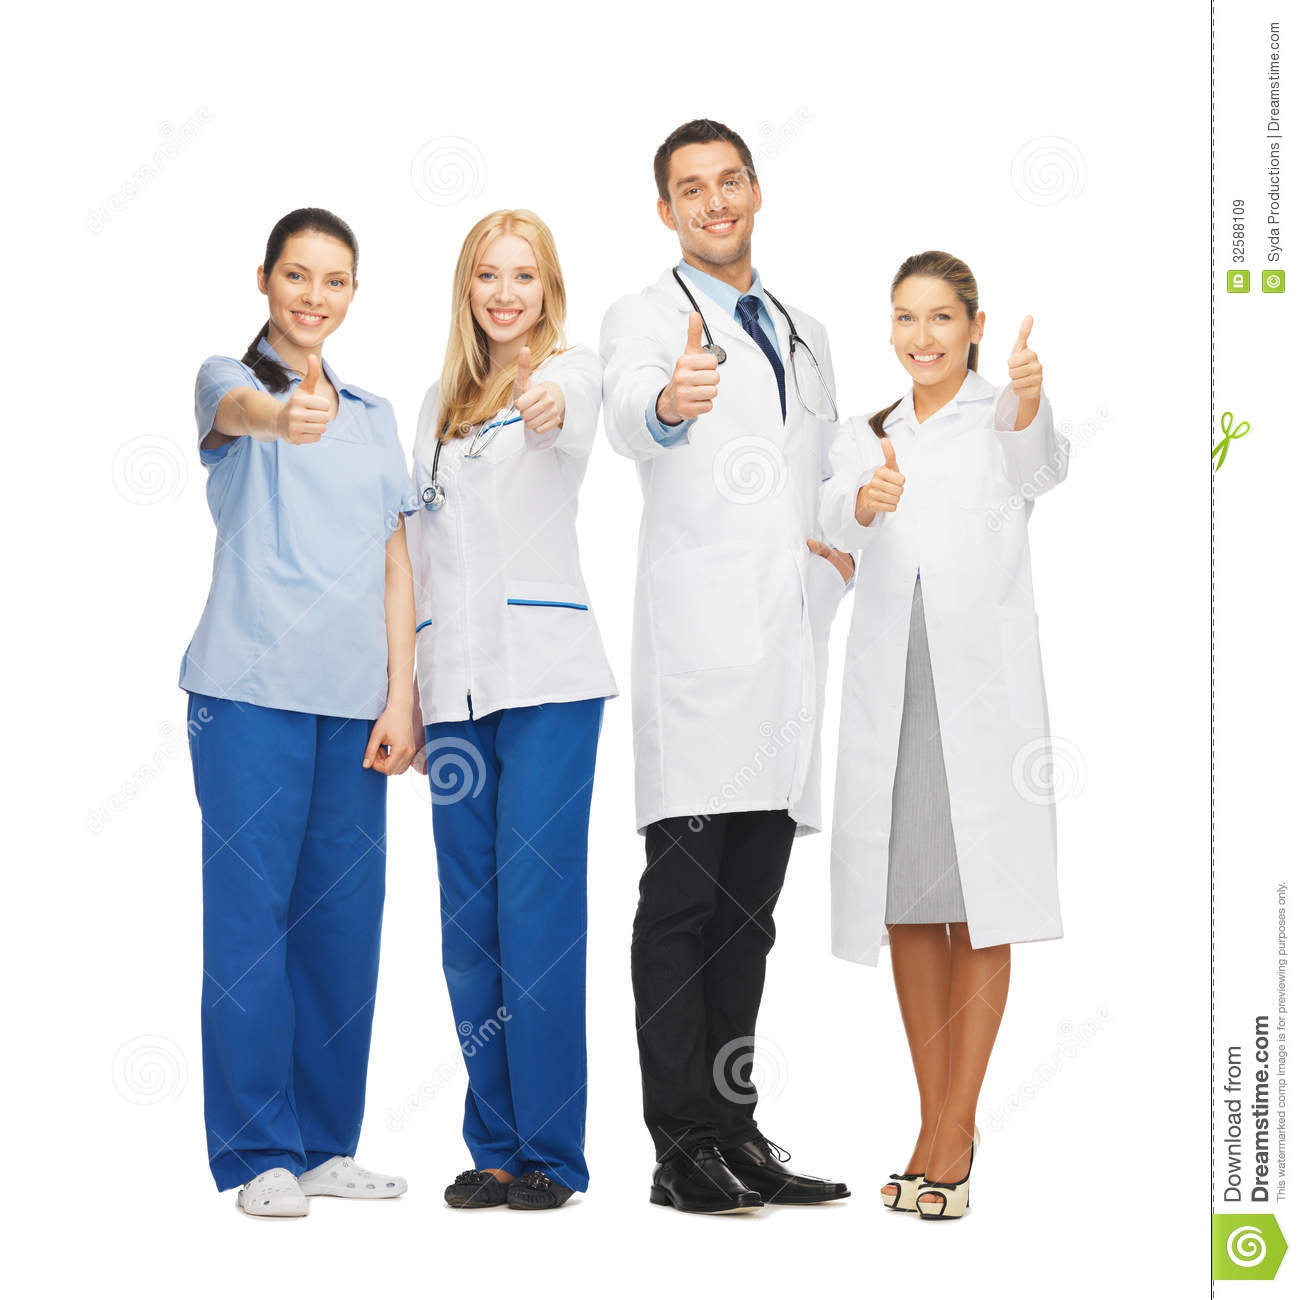 Group Of Doctors Clipart team or group of doctors